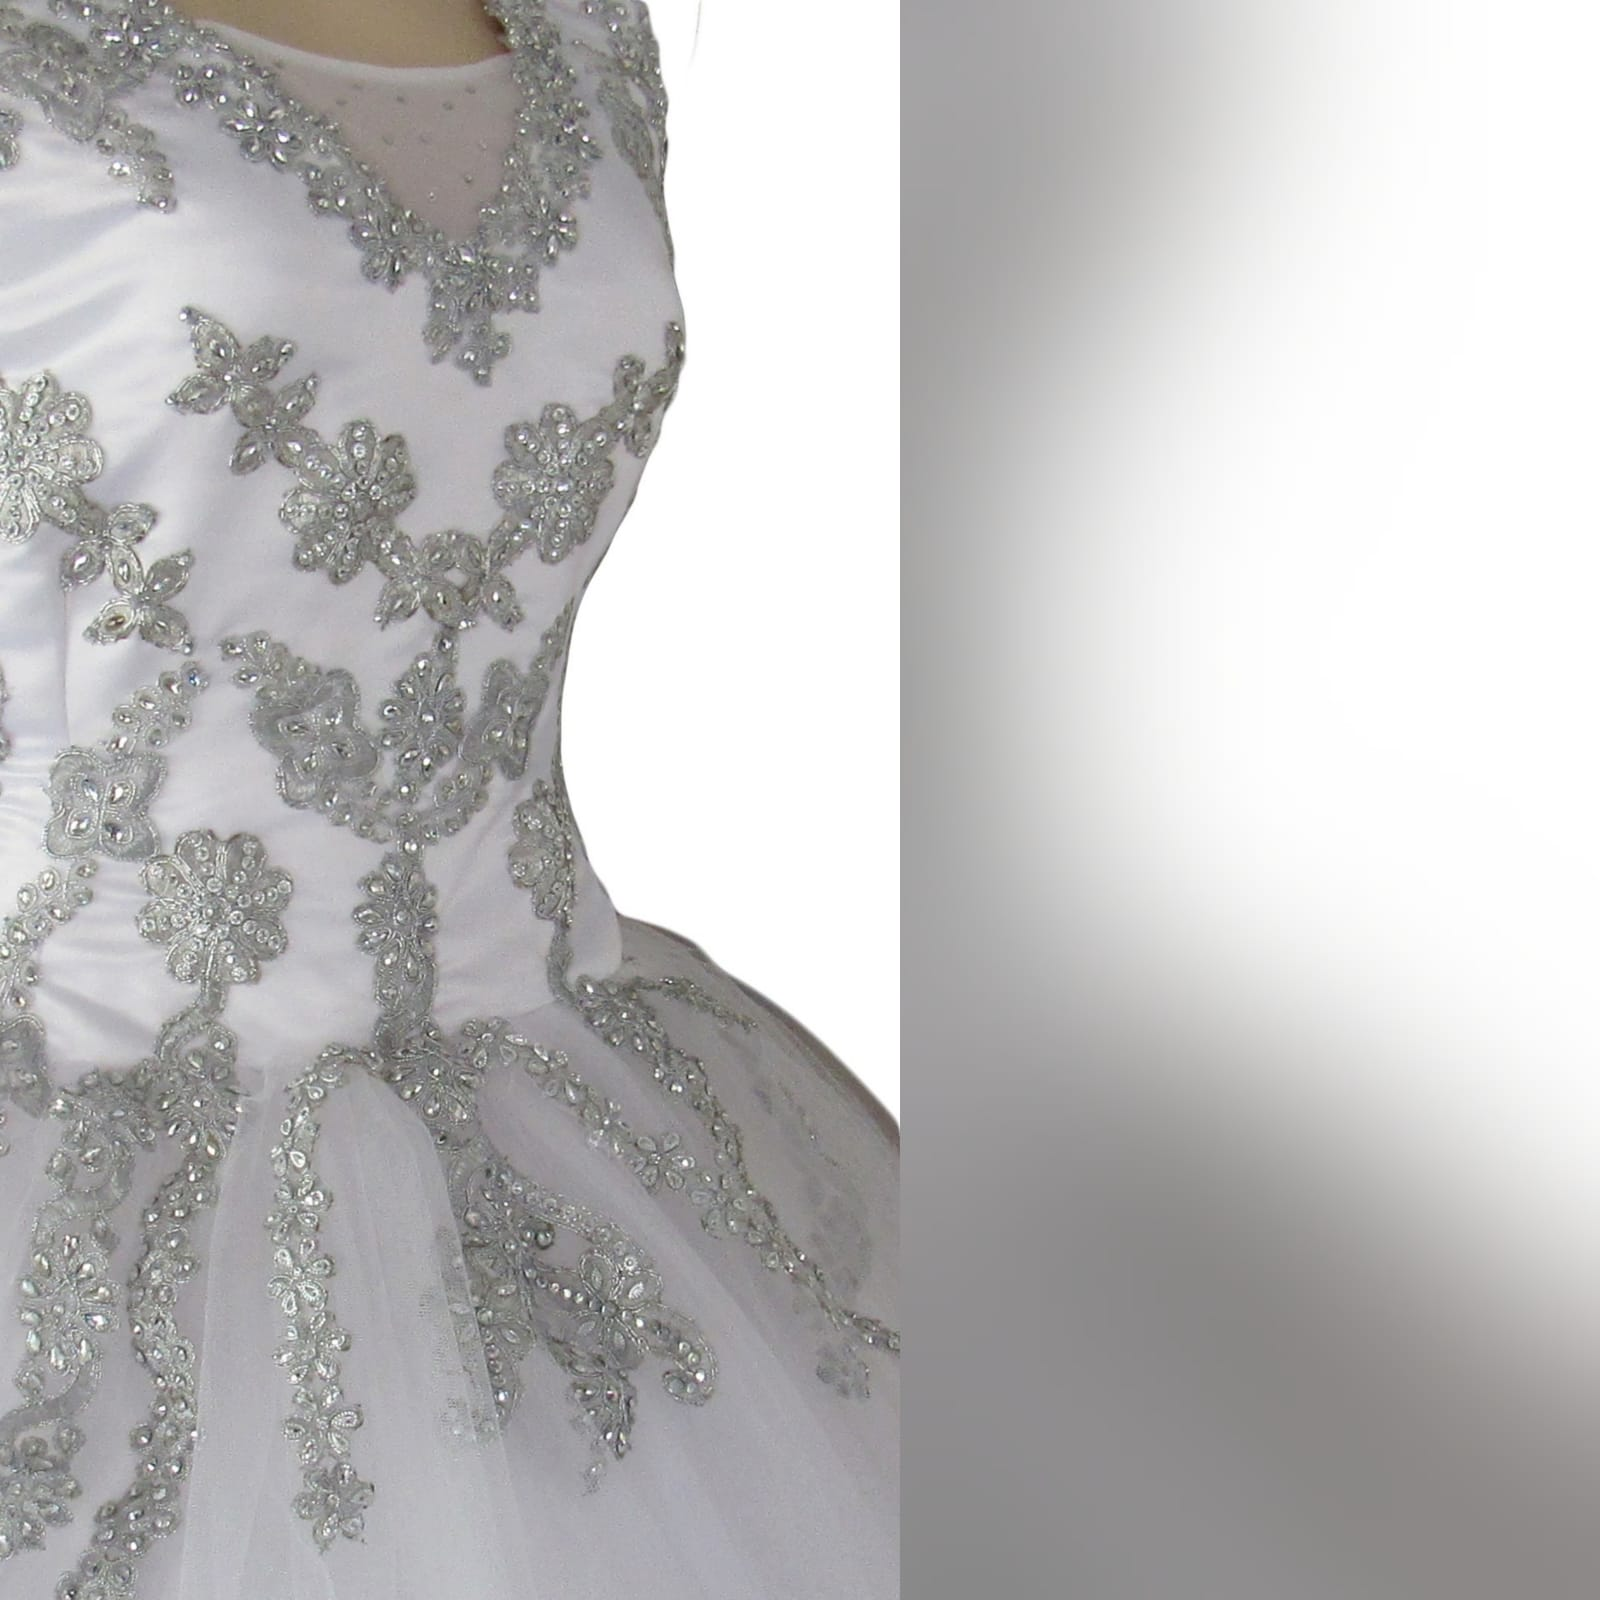 White & silver ball gown wedding dress 11 white & silver ballgown wedding dress. Bodice detailed with silver detail and beads. Falling to the ballgown. Back detailed with silver covered buttons.